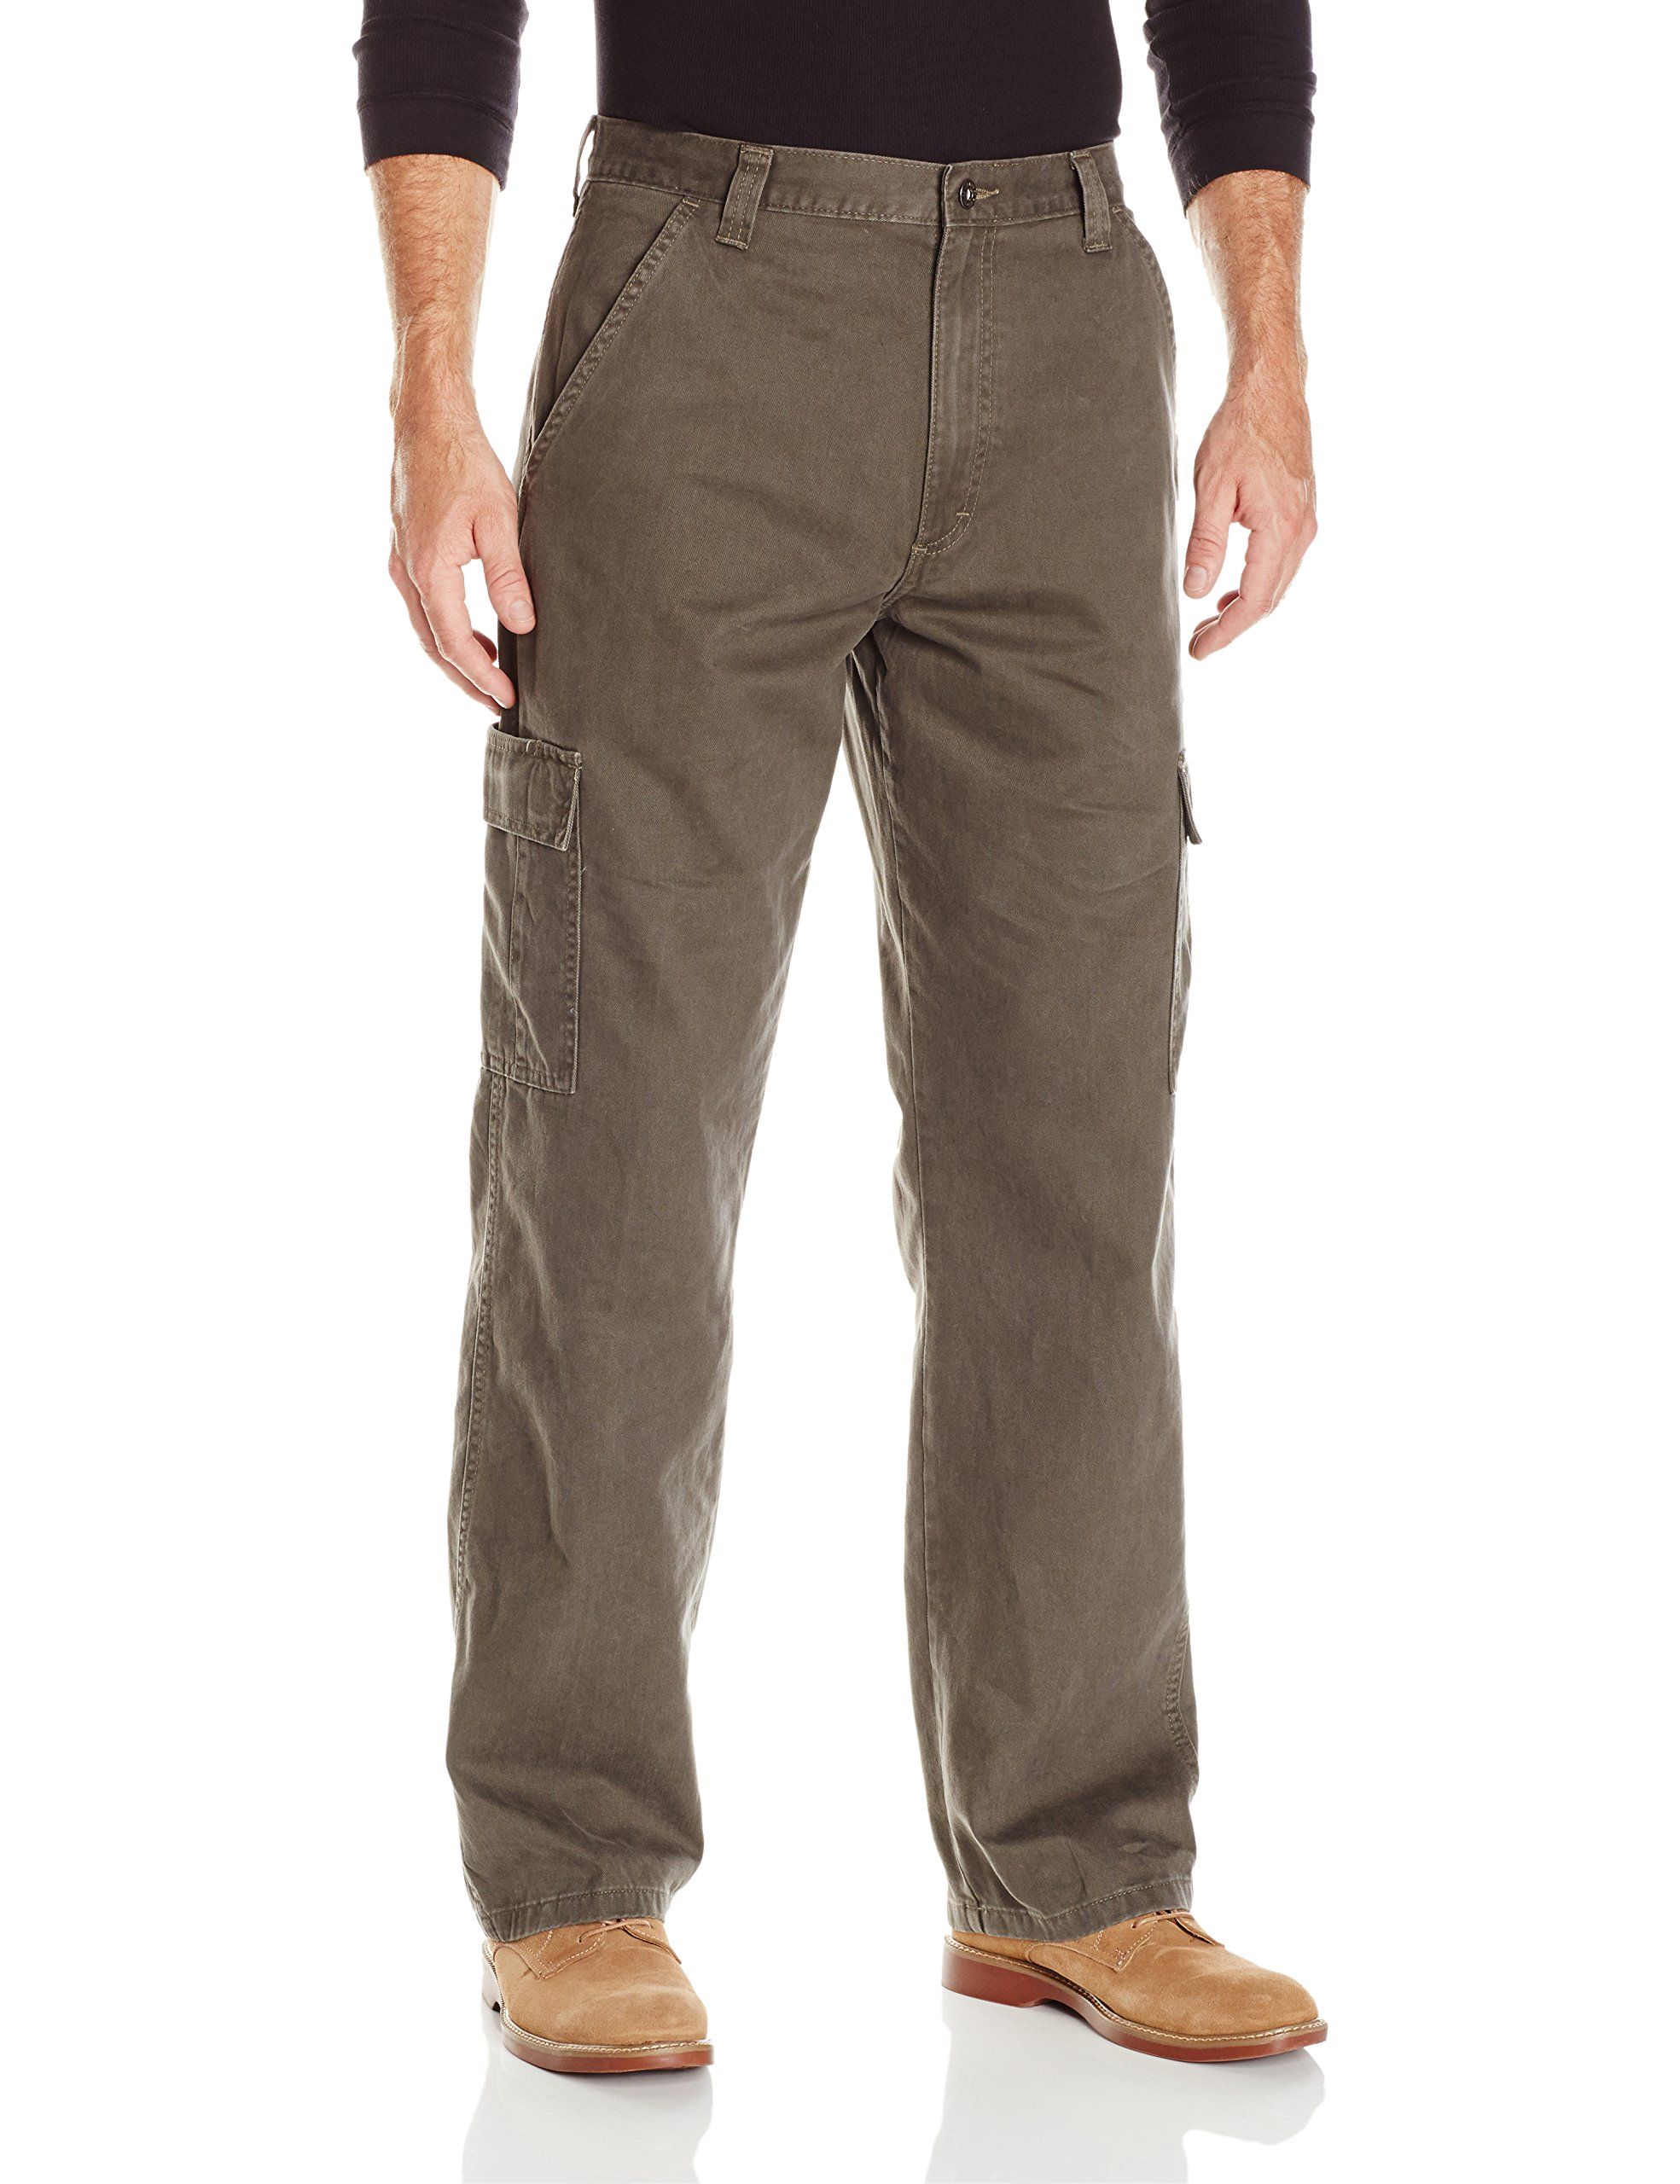 Wrangler Authentics Men's Classic Twill Relaxed Fit Cargo Pant, Olive Drab, 32 x 34